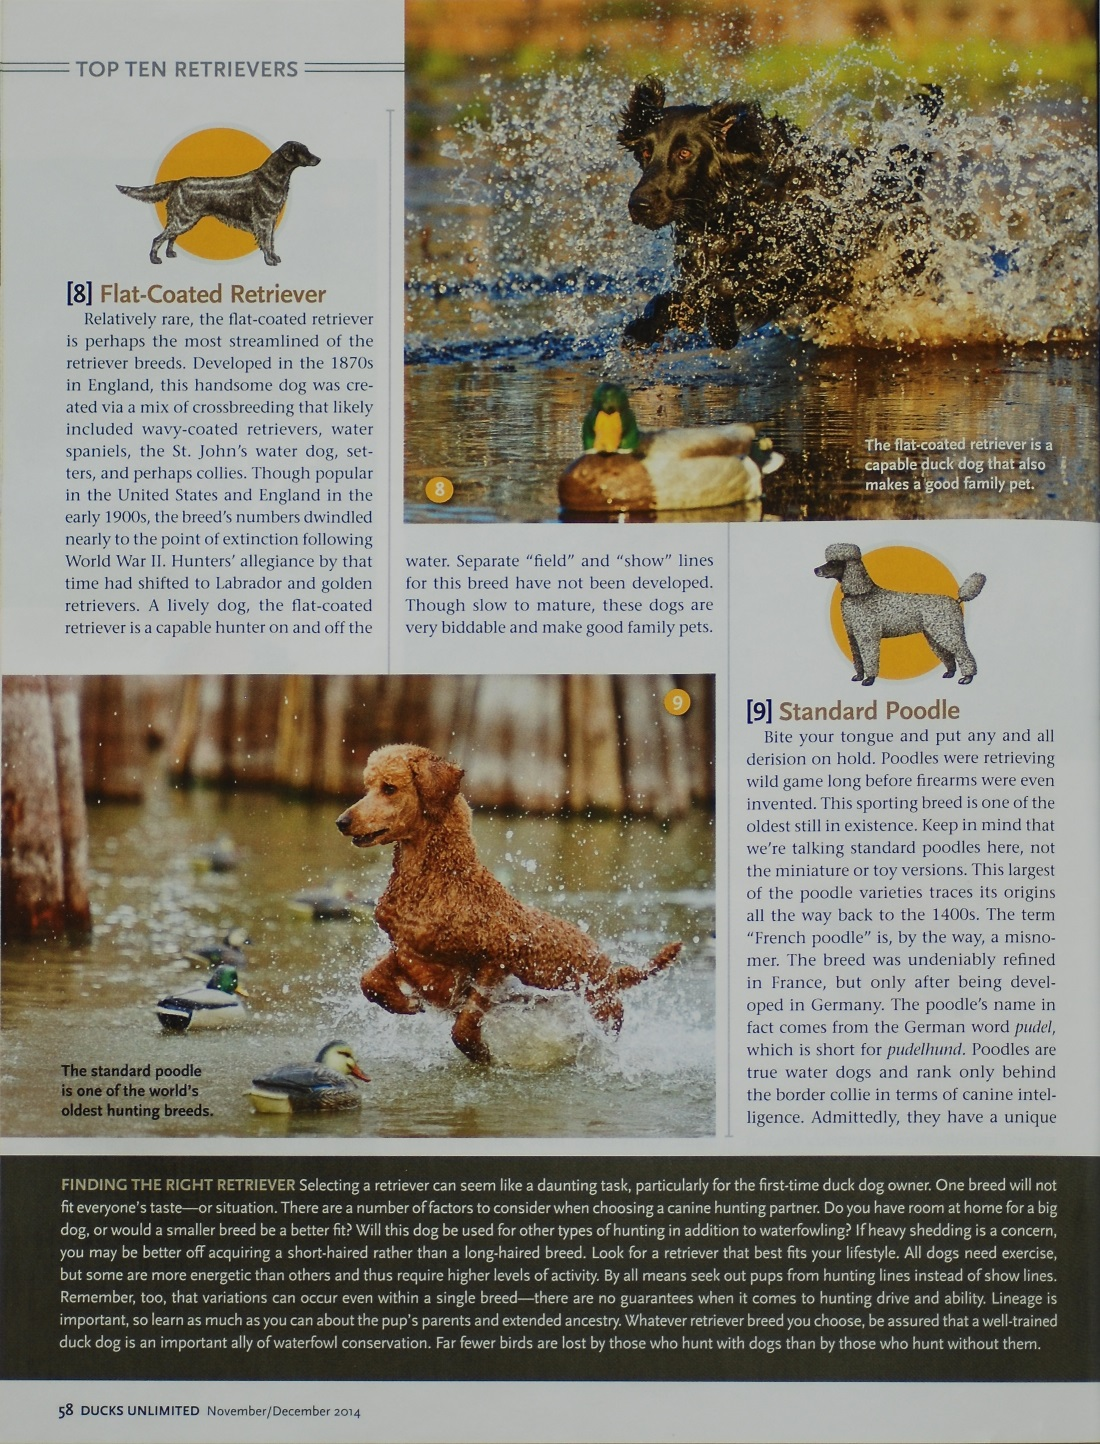 Ducks Unlimited Magazine Nov-Dec 2014